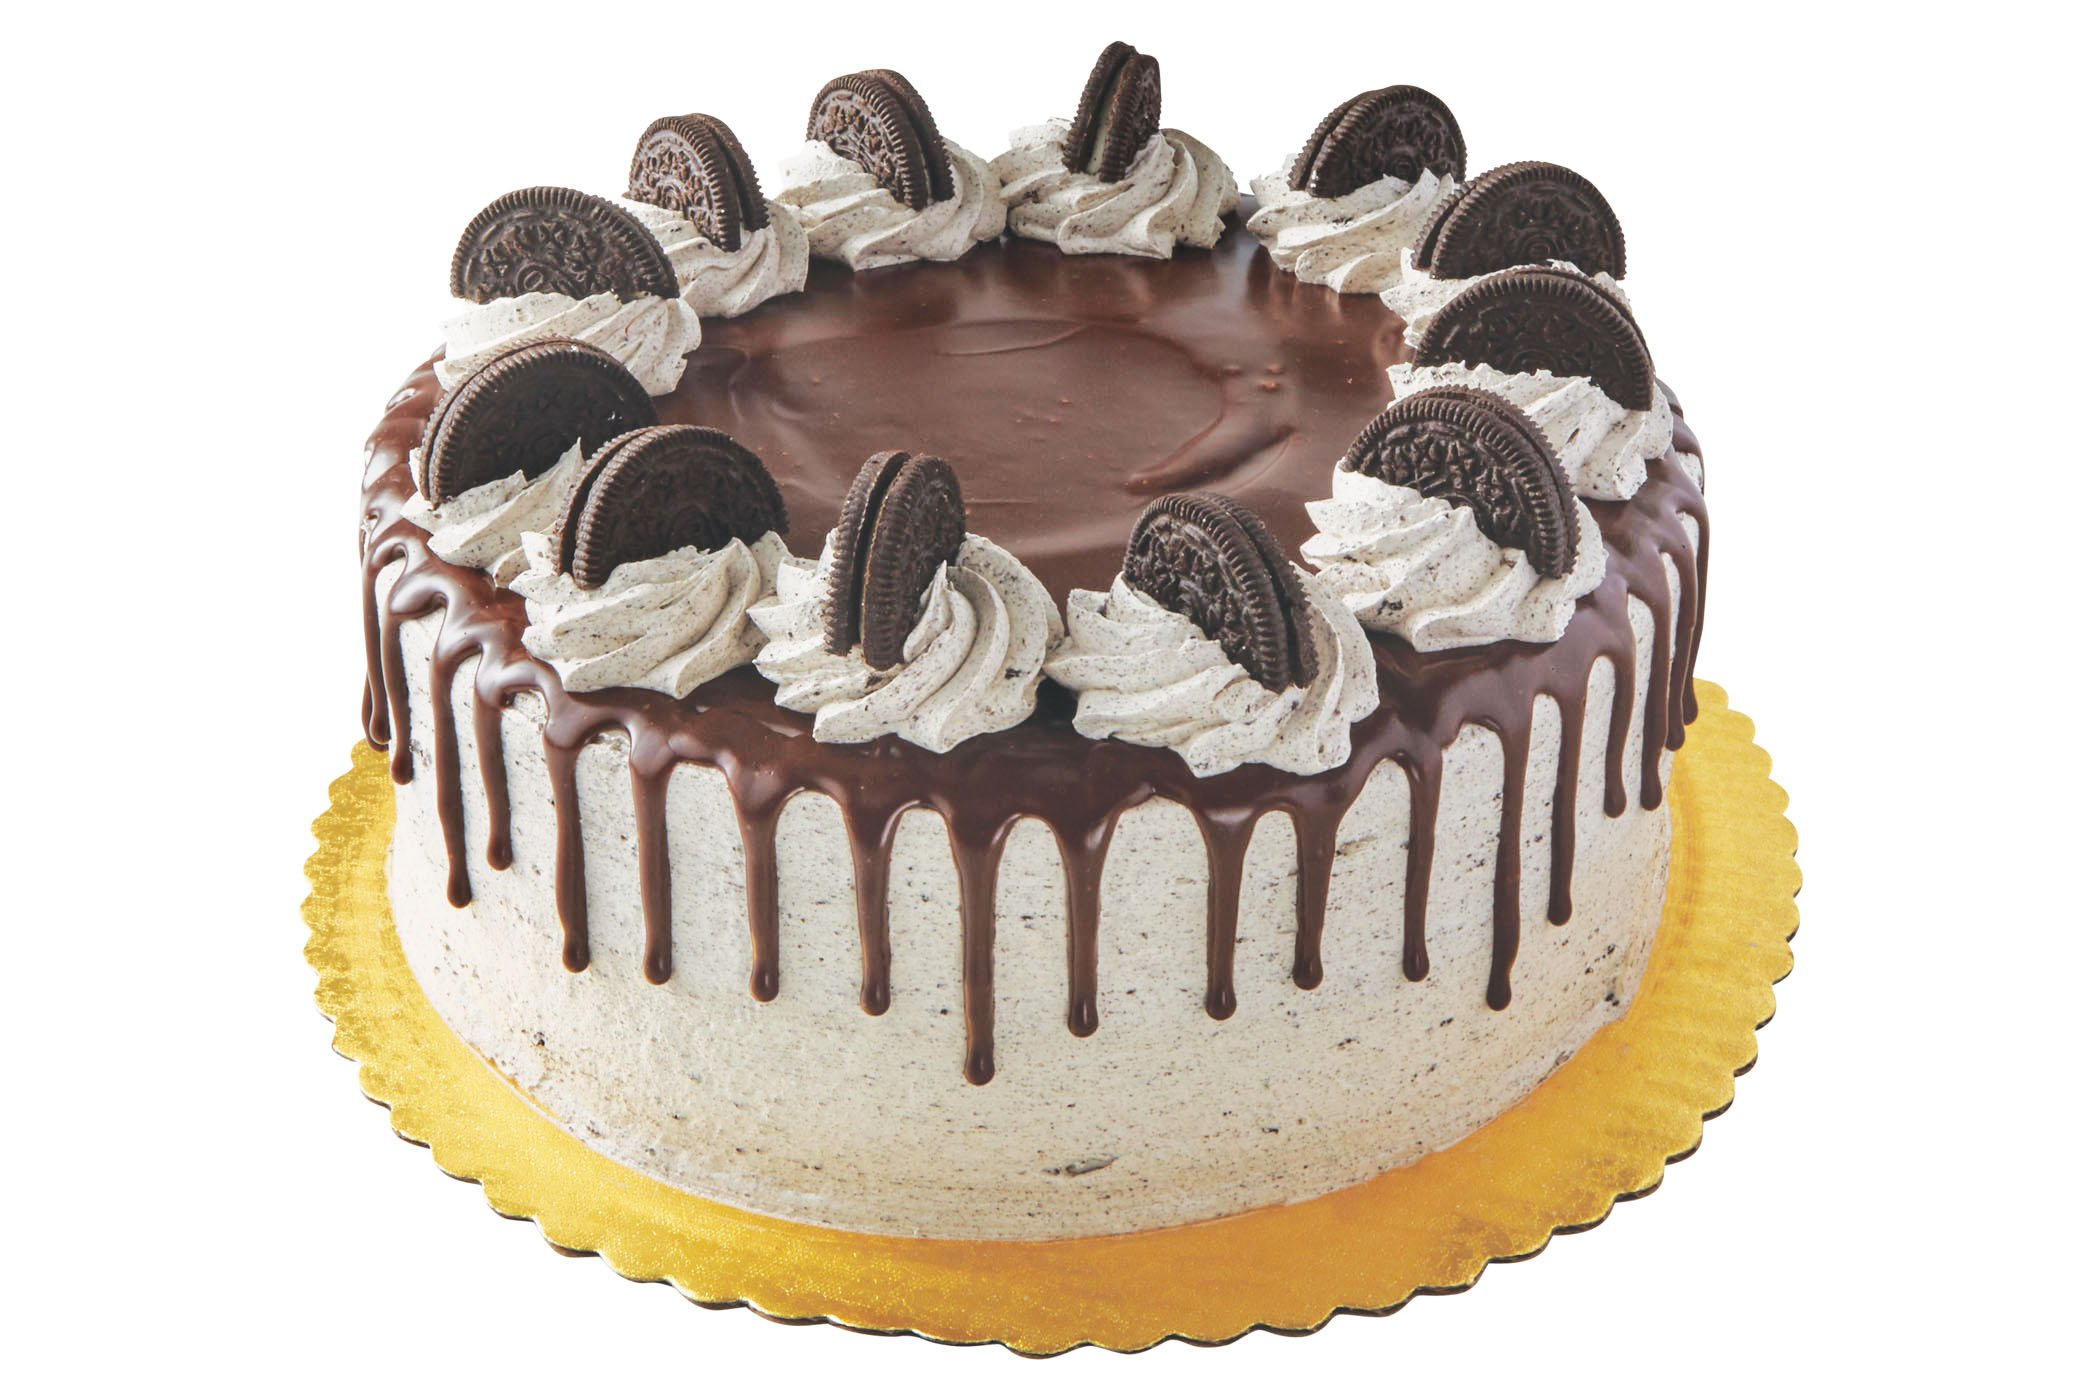 Pleasing Heb Chocolate Cake With Oreo Icing Shop Cakes At Heb Funny Birthday Cards Online Kookostrdamsfinfo